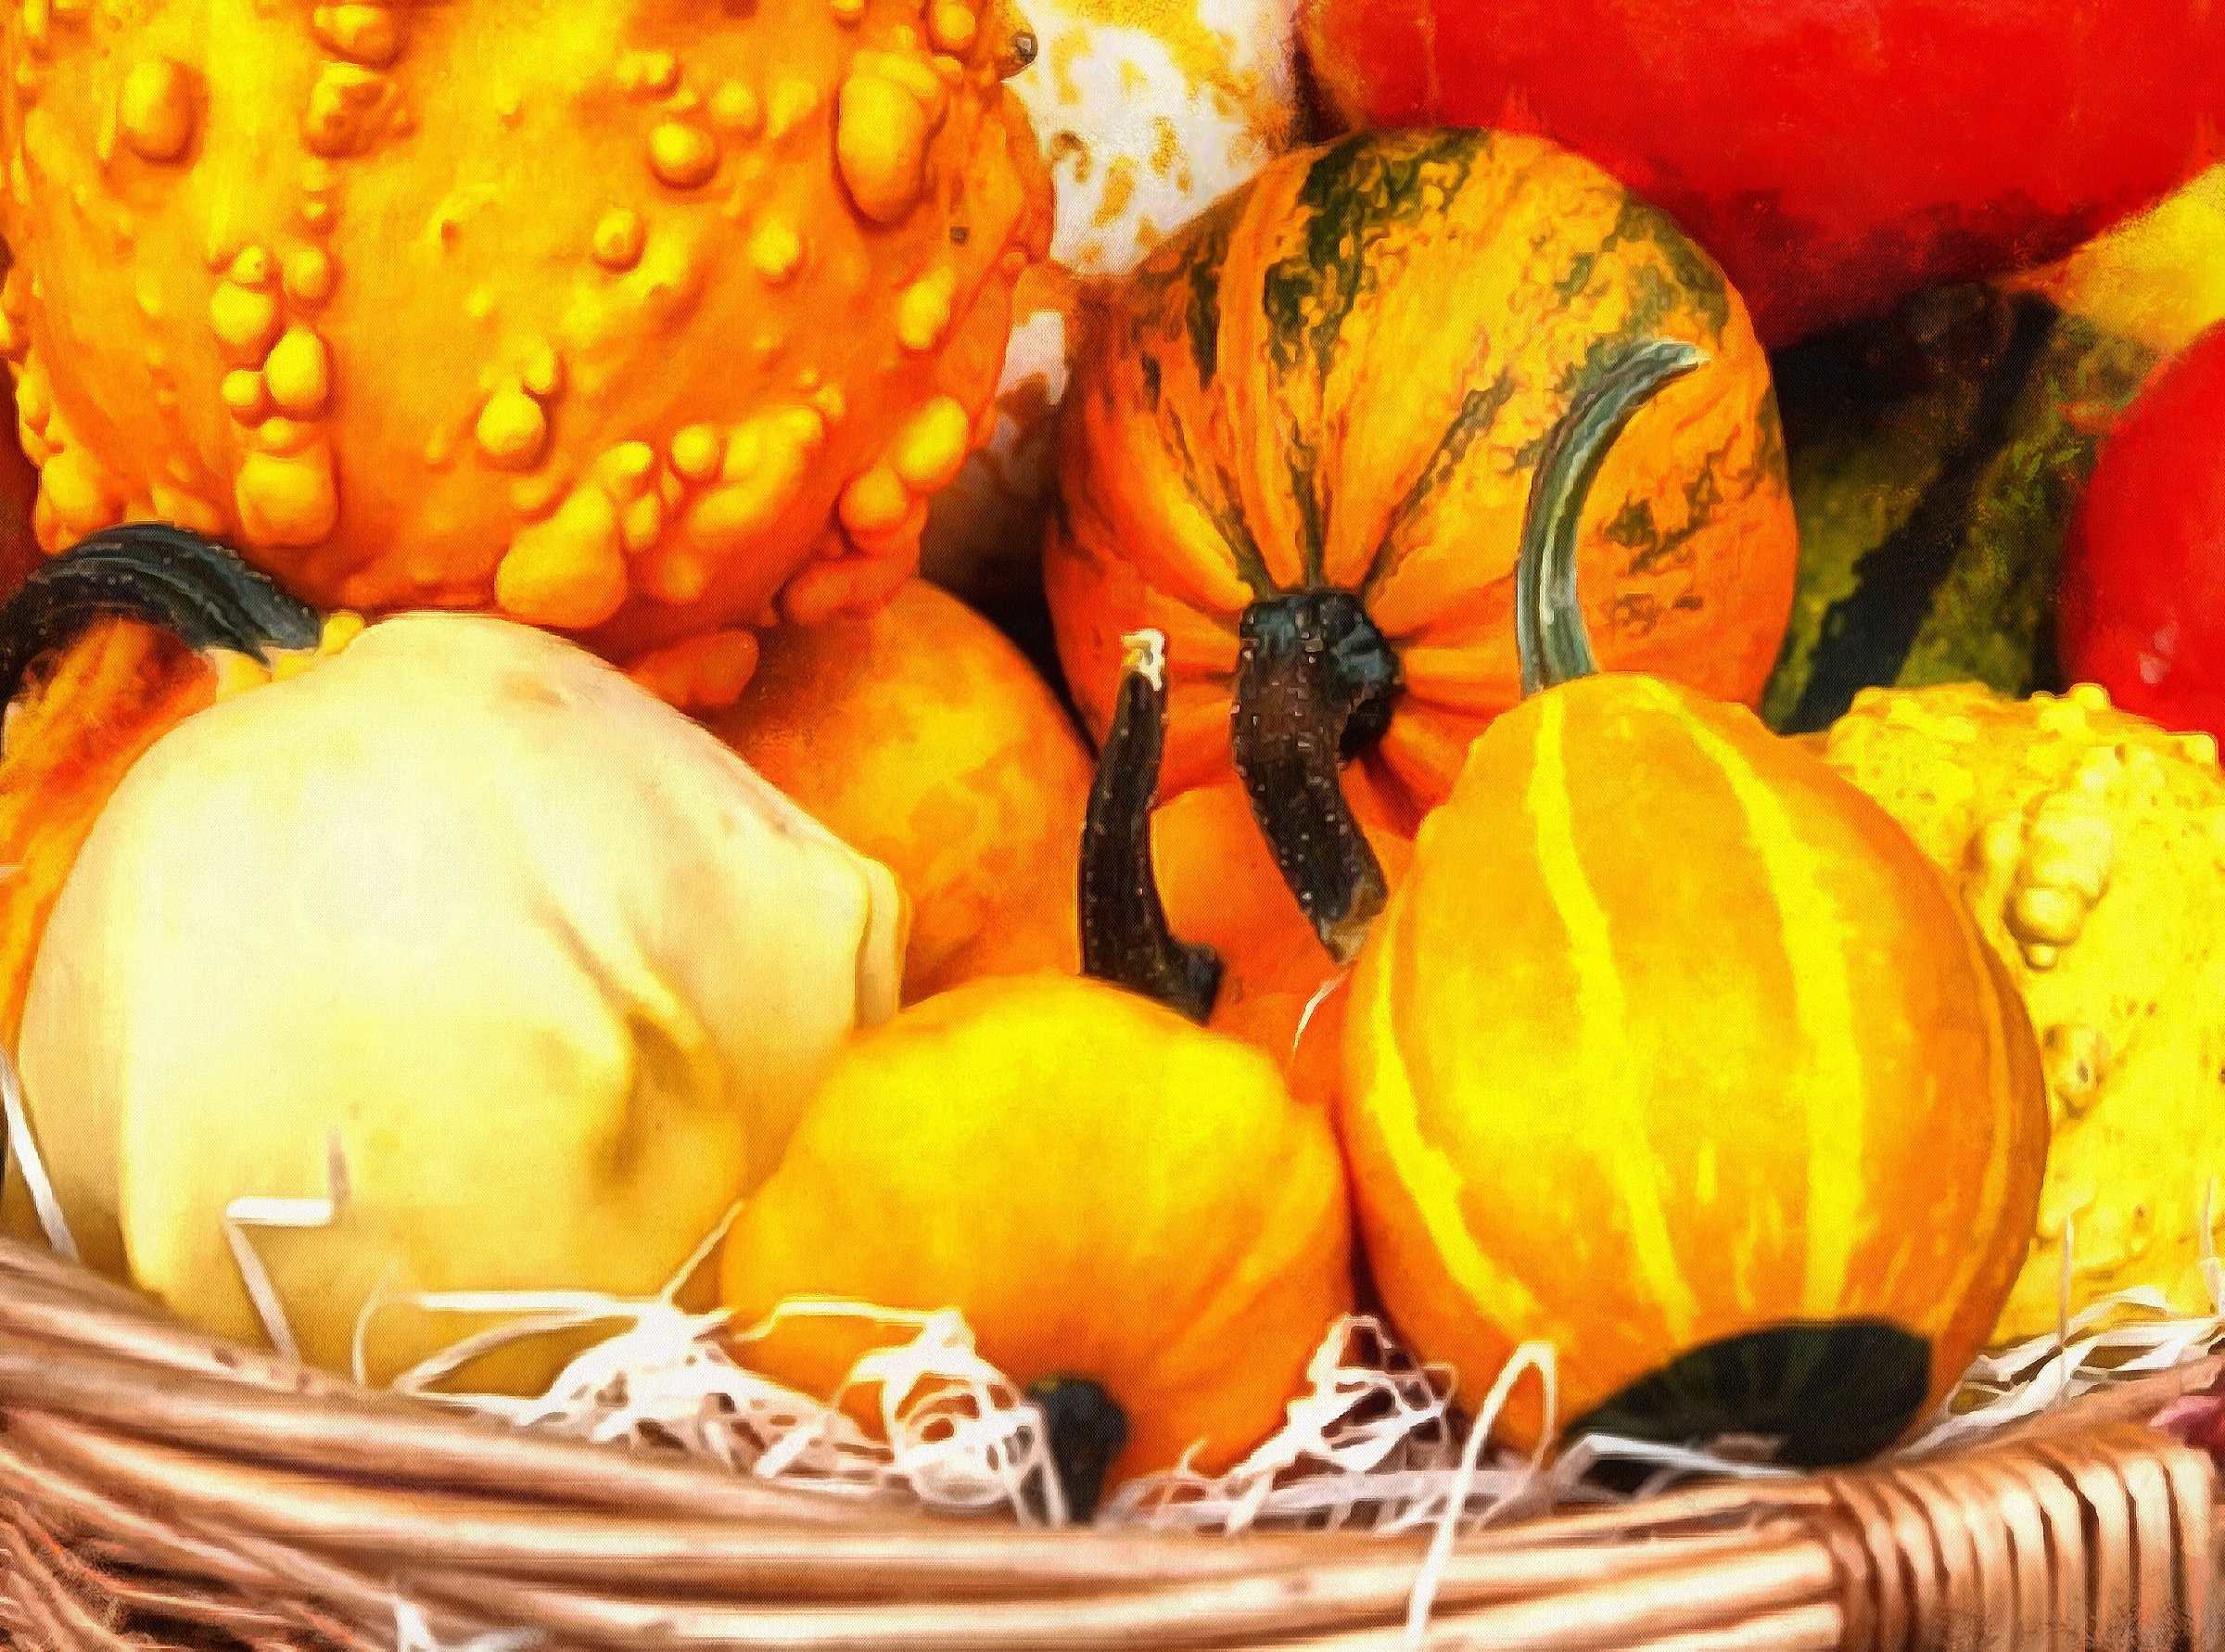 pumpkin, thanksgiving, vegetables, harvest, holiday, - thanksgiving, stock free image, public domain photos, free stock photo, download public domain images.